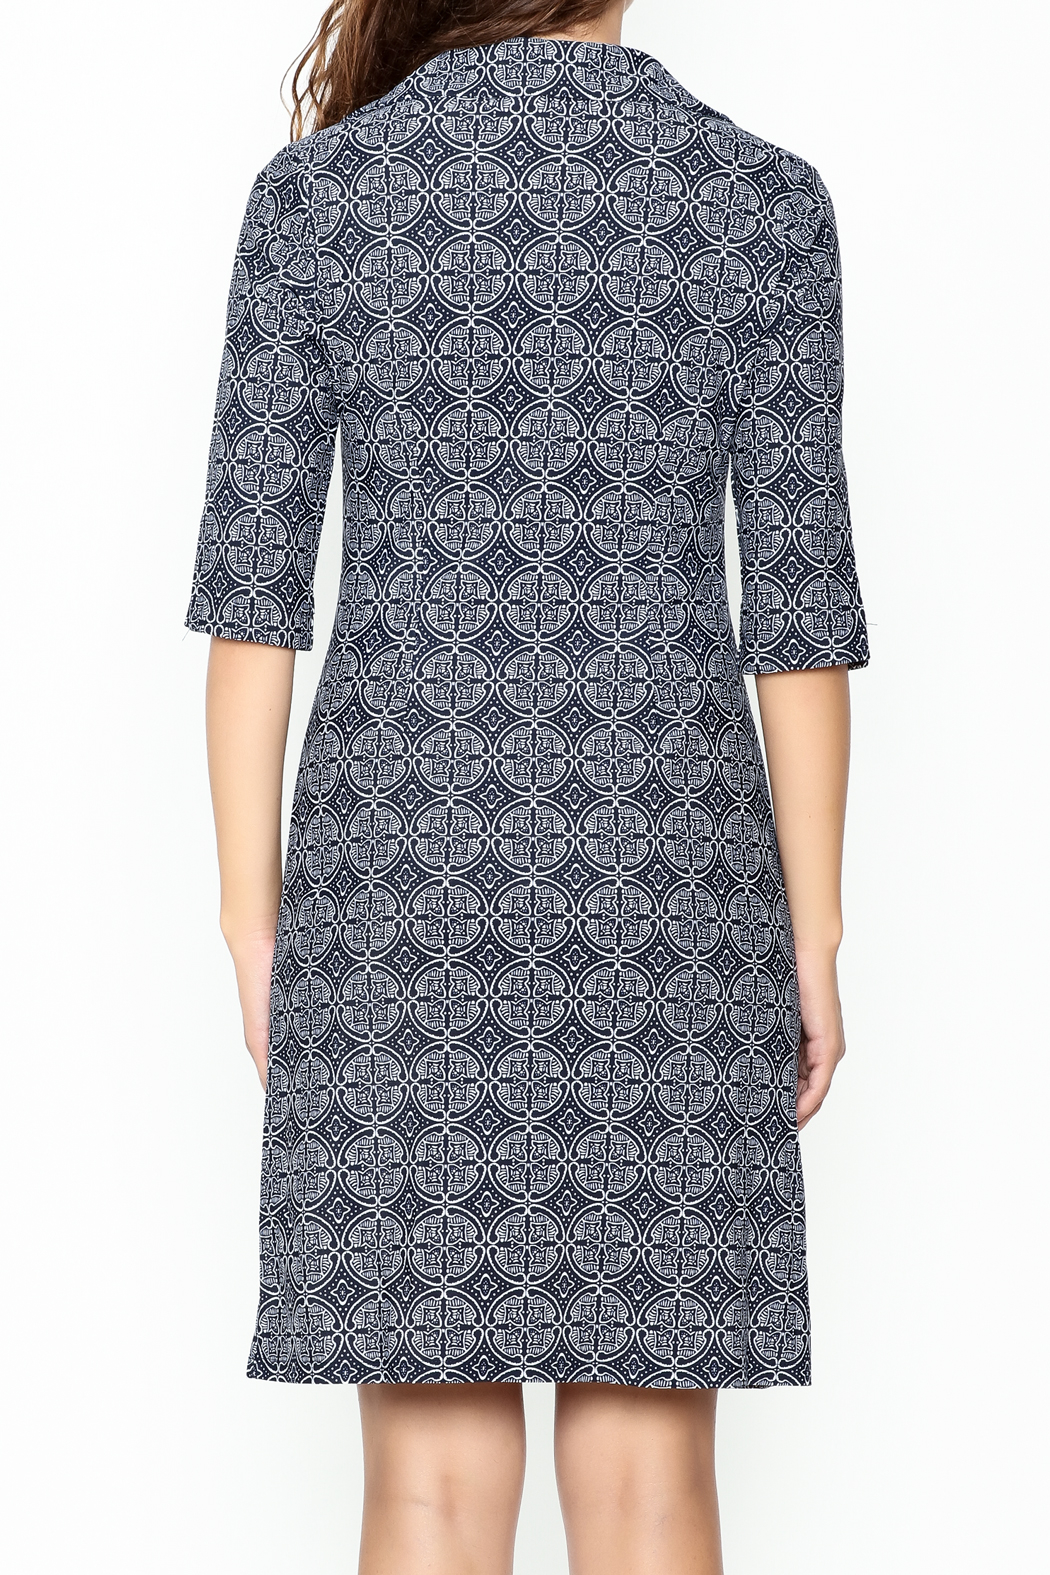 Jude Connally Megan Tunic Dress - Back Cropped Image